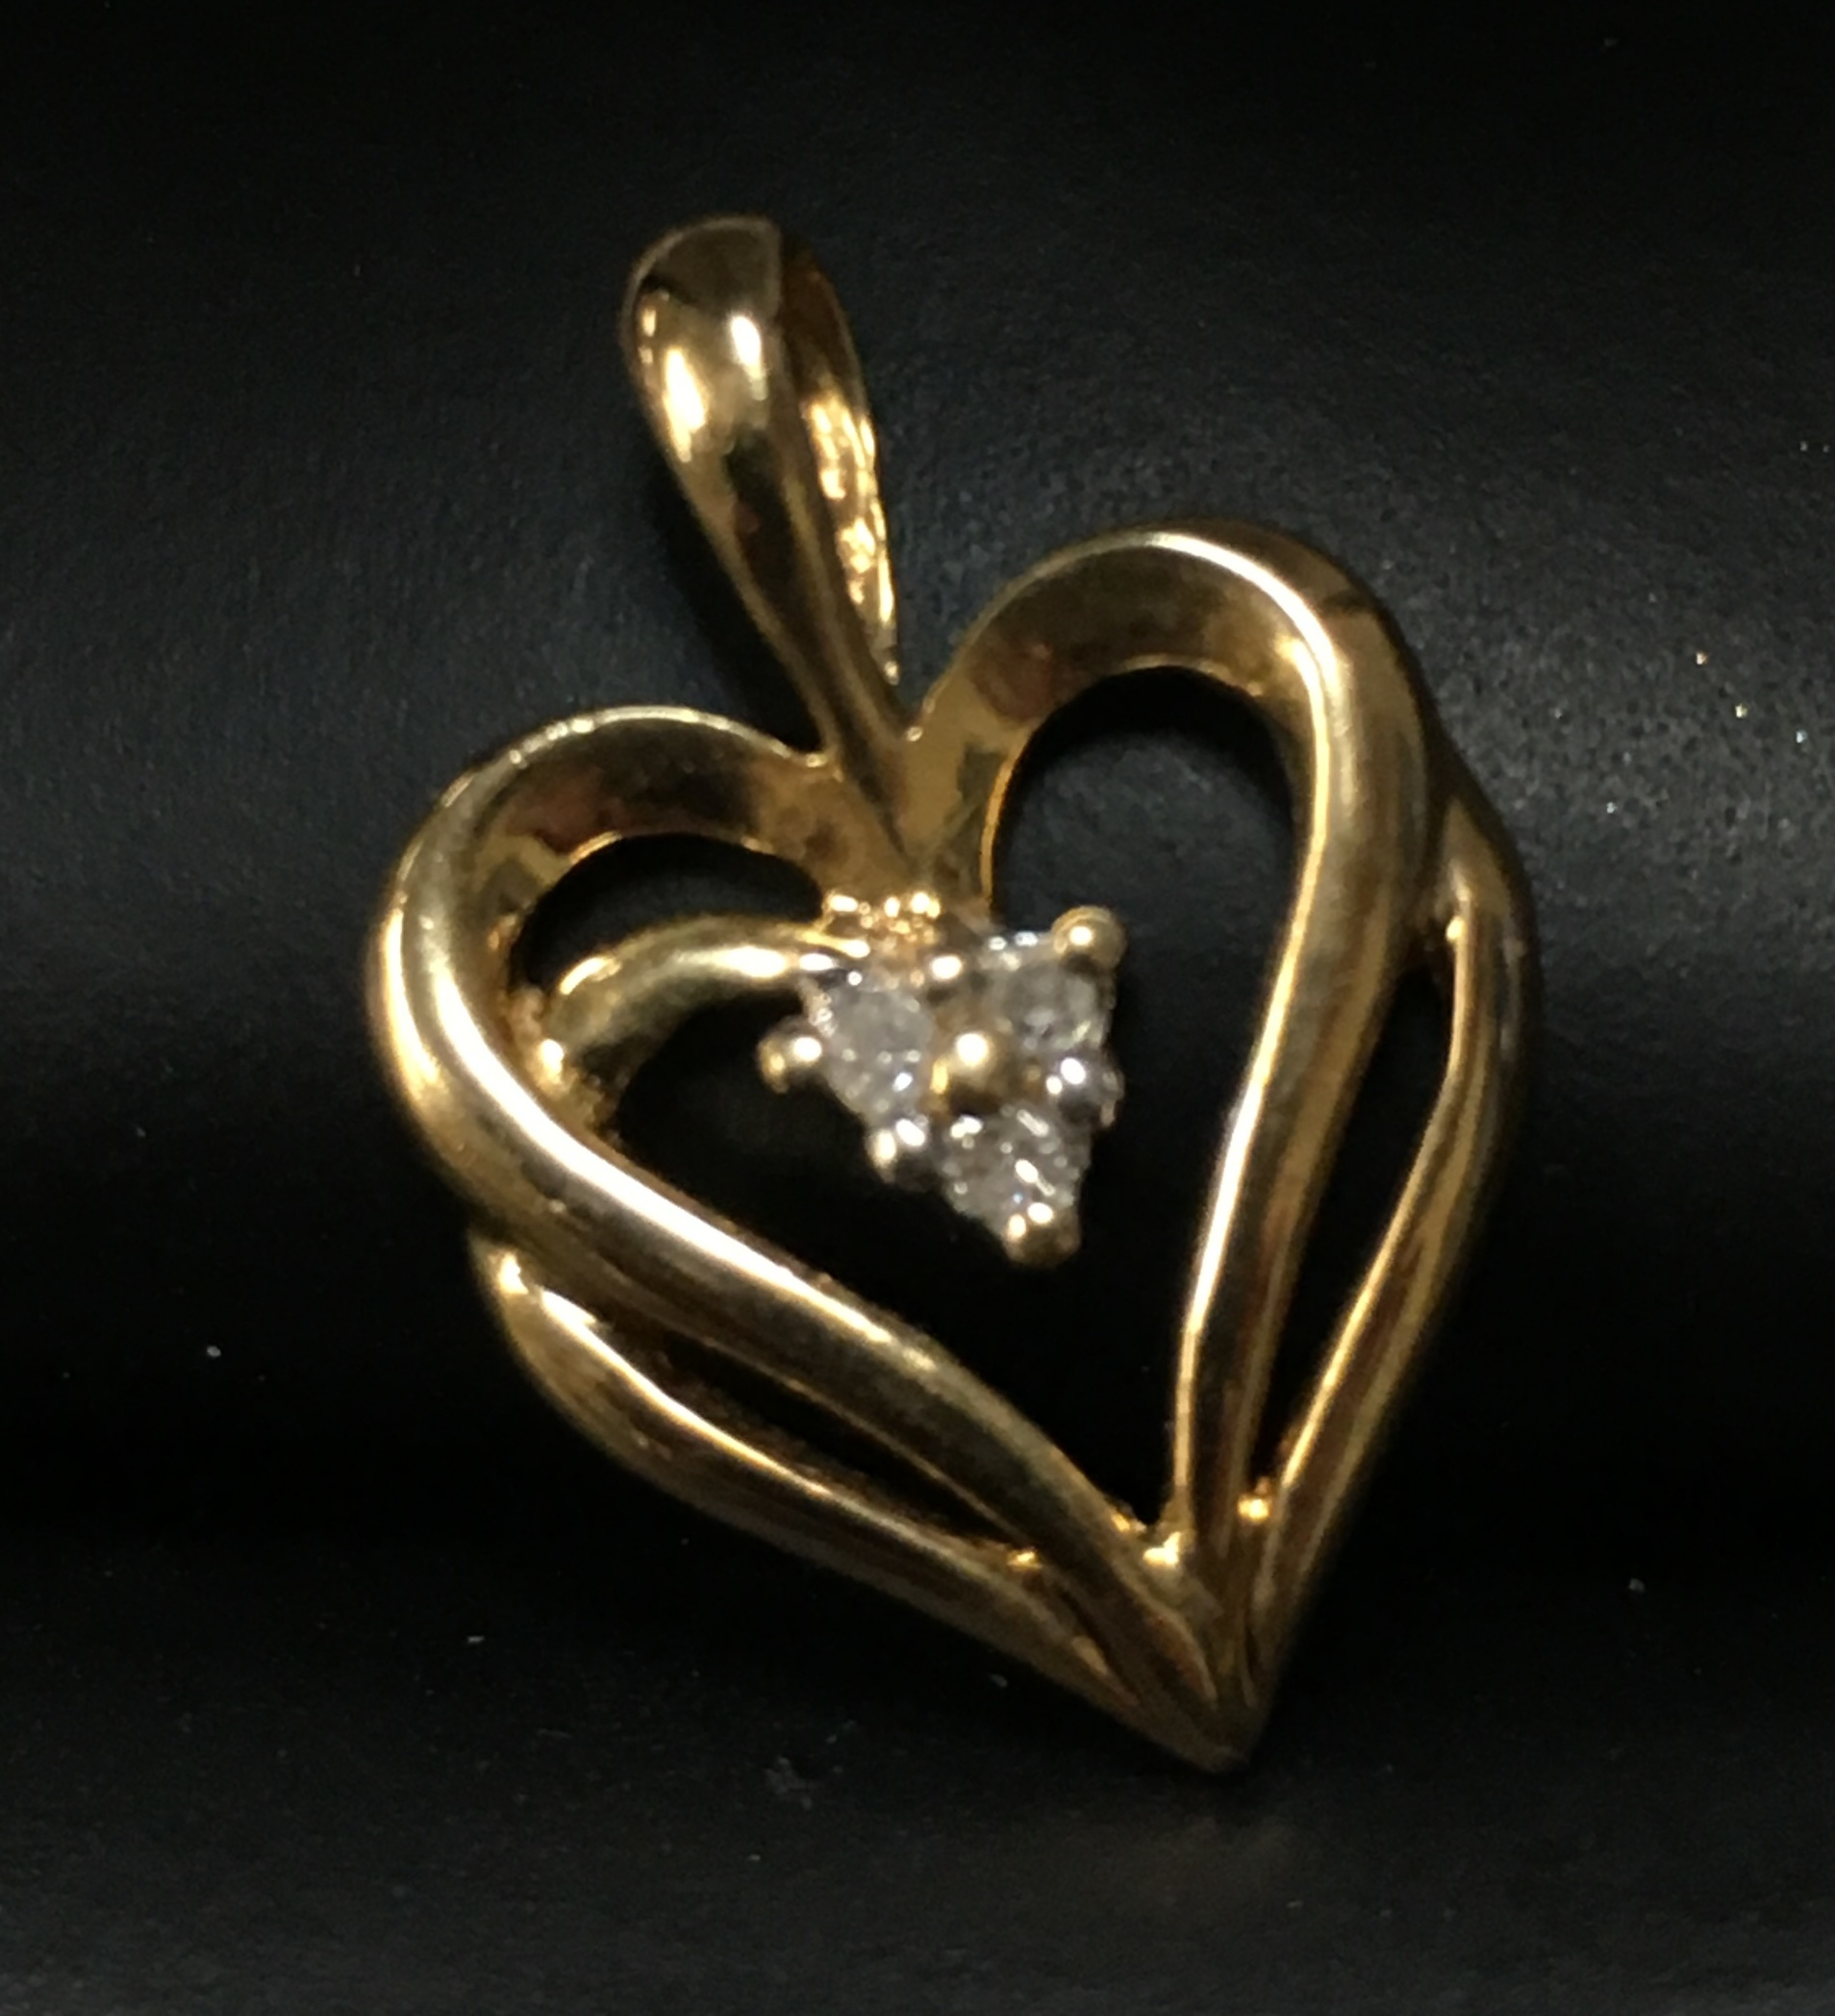 10KT YELLOW GOLD HEART CHARM WITH 3 TINY CLEAR STONES